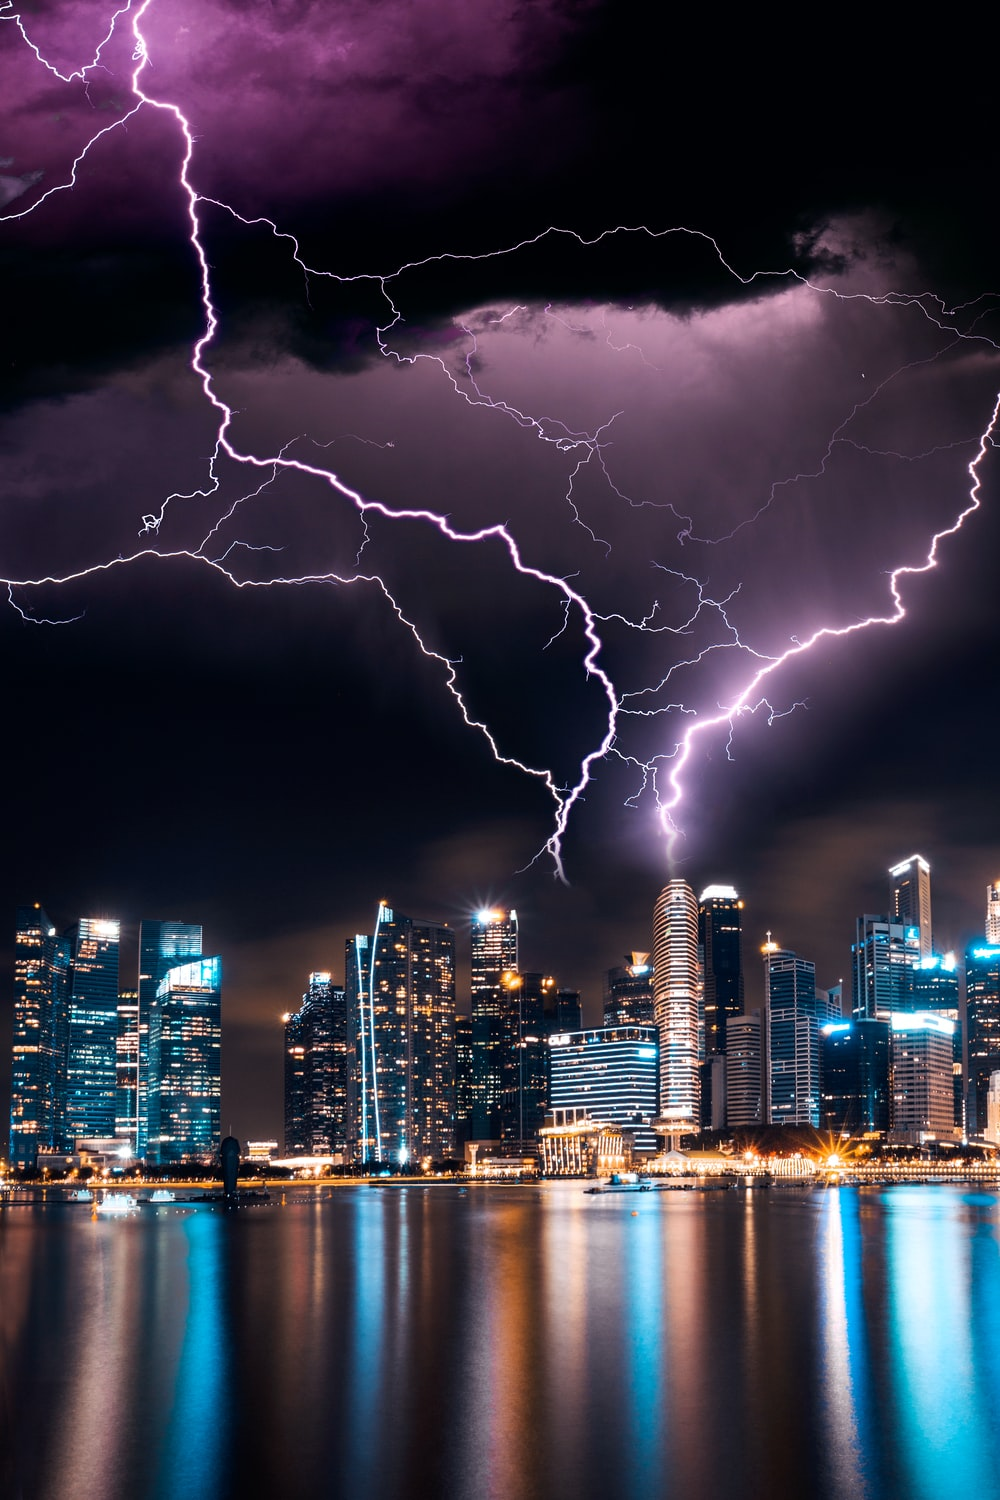 lightning storm over skyscrapers photo – Free Storm Image on Unsplash